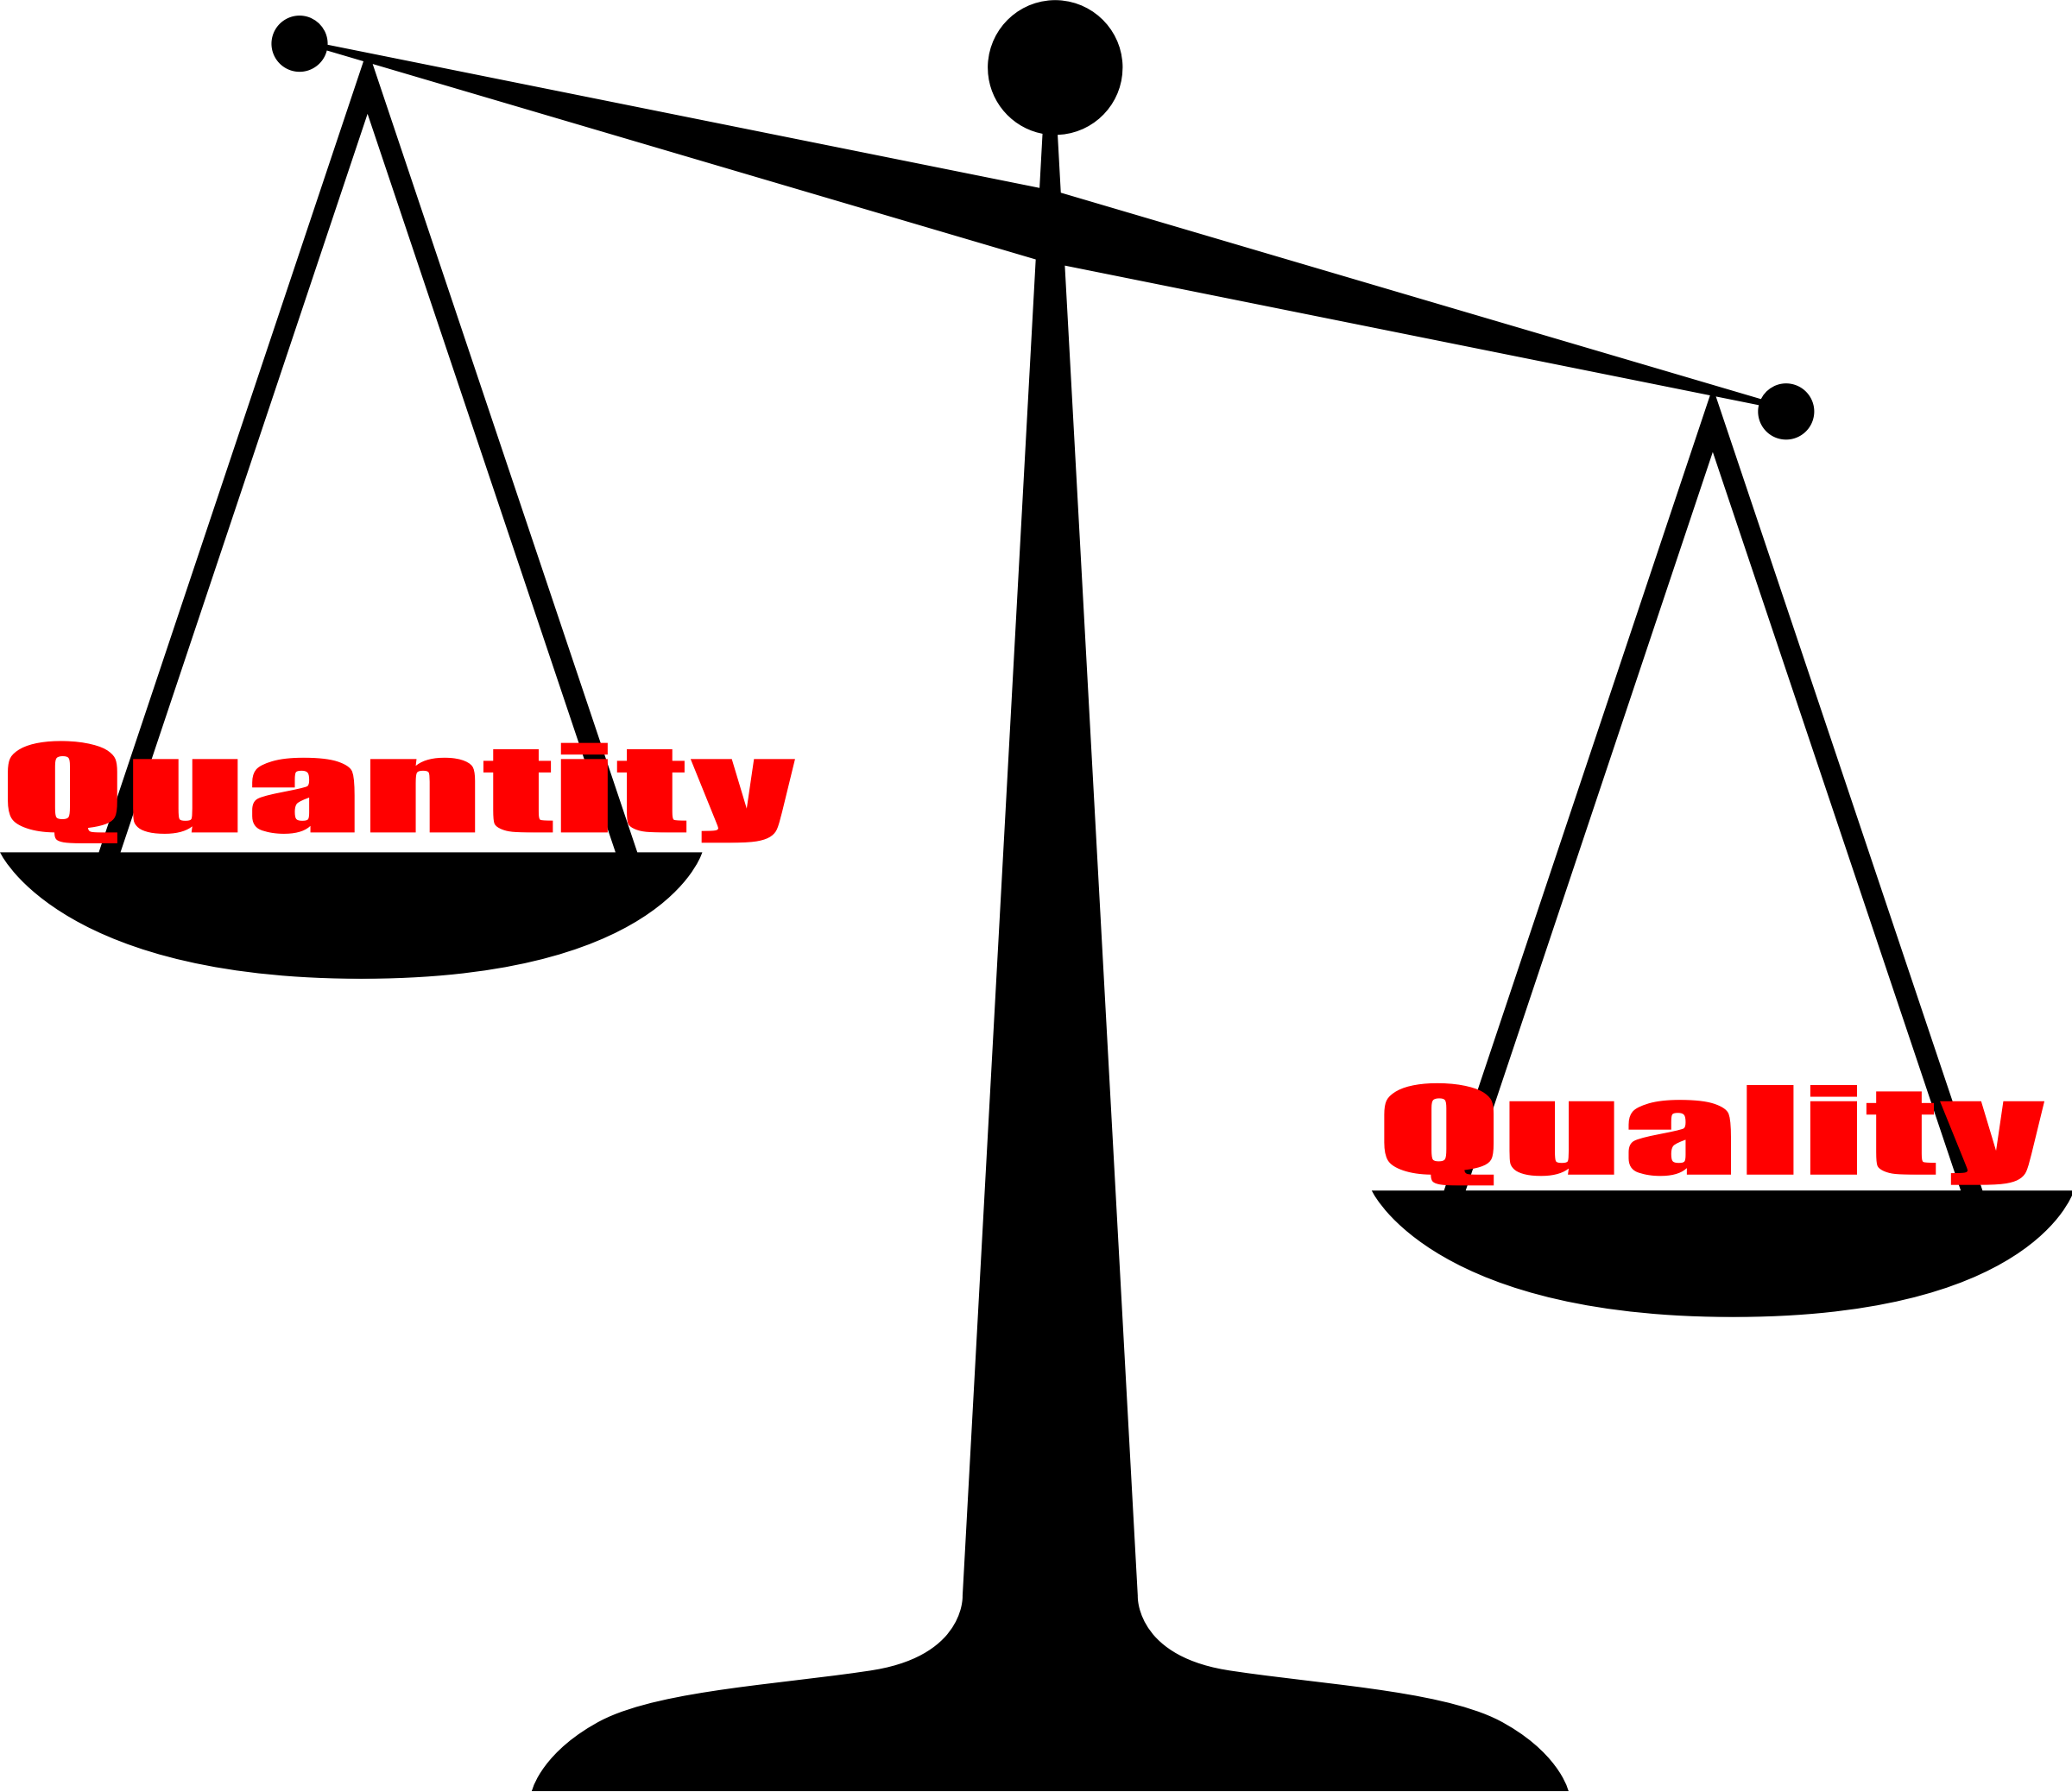 Quality vs Quantity Vector Clipart image.